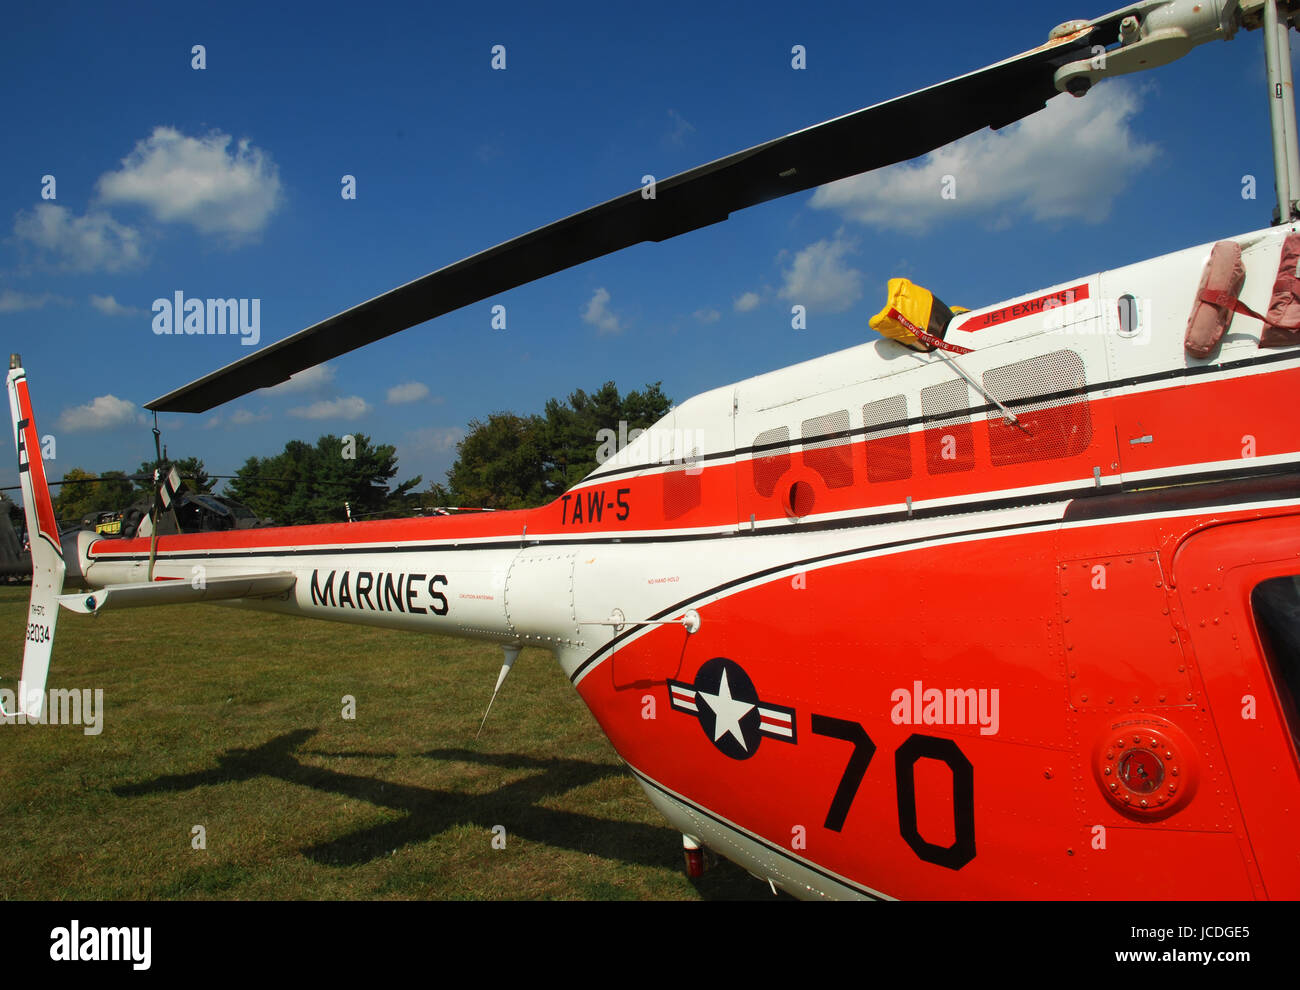 pictures of helicopters and other rotary wing aircraft at air show - Stock Image